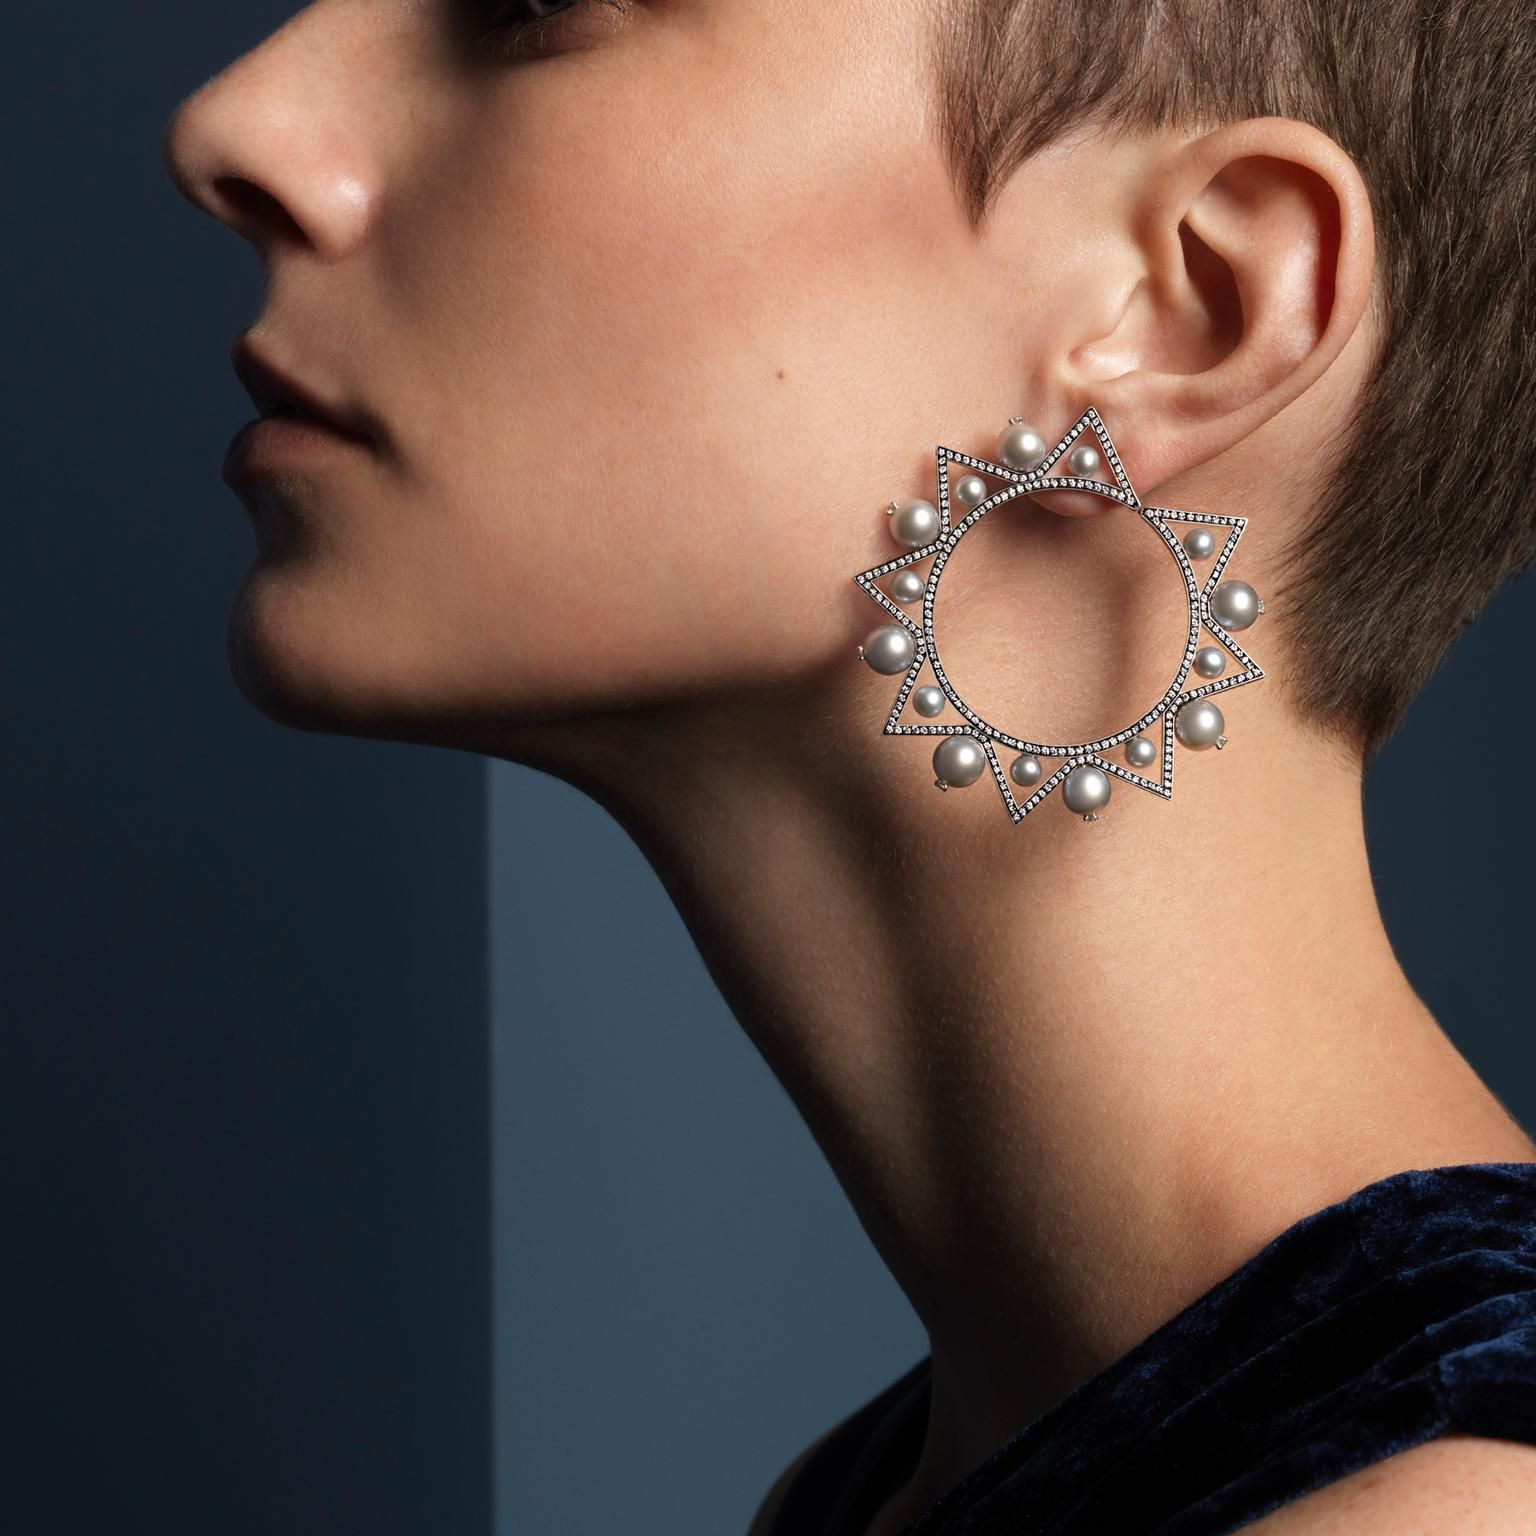 Nikos Koulis Lingerie pearl hoop earrings set in white old with diamonds. Geotmetric style. Modern design for pearls. Photo with pixie crop hairstyle. http://www.thejewelleryeditor.com/jewellery/top-5/top-5-pearl-jewels-with-attitude/ #jewelry